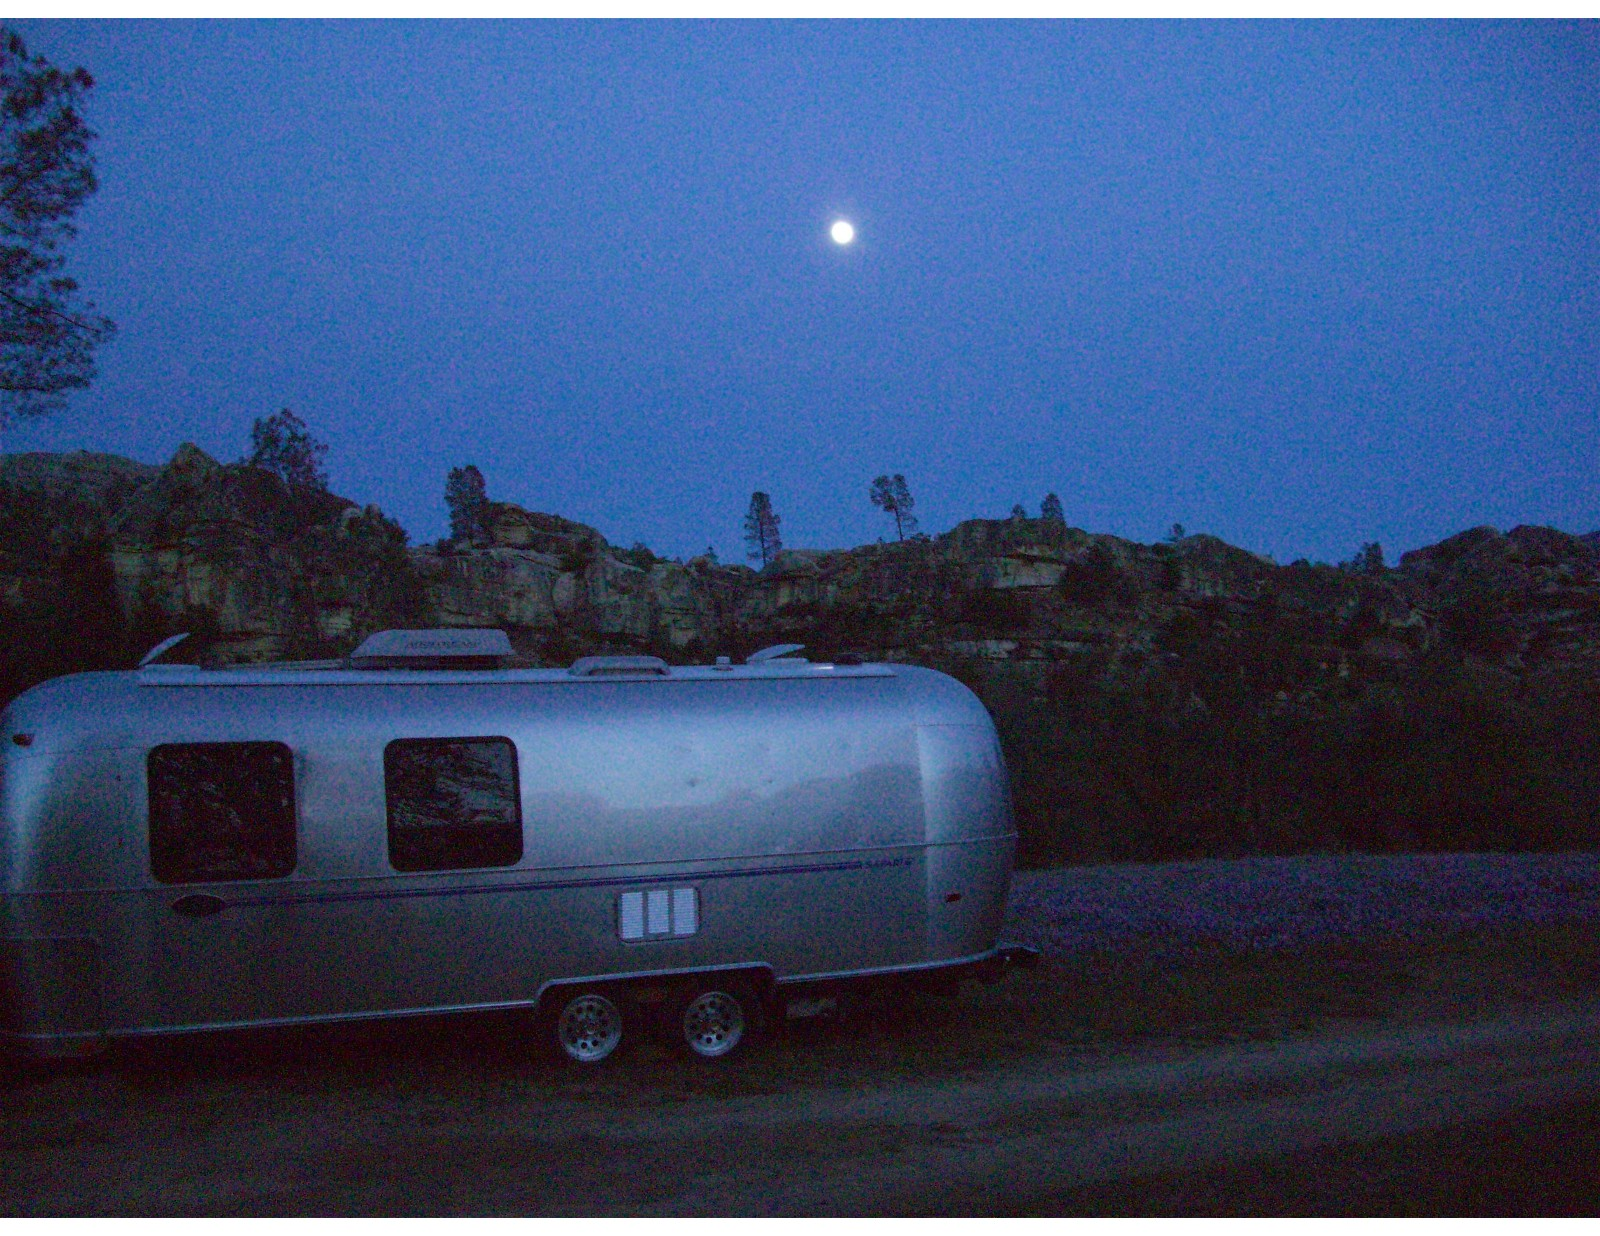 Click image for larger version  Name:Liggett Moon on AS.JPG Views:87 Size:608.3 KB ID:61982